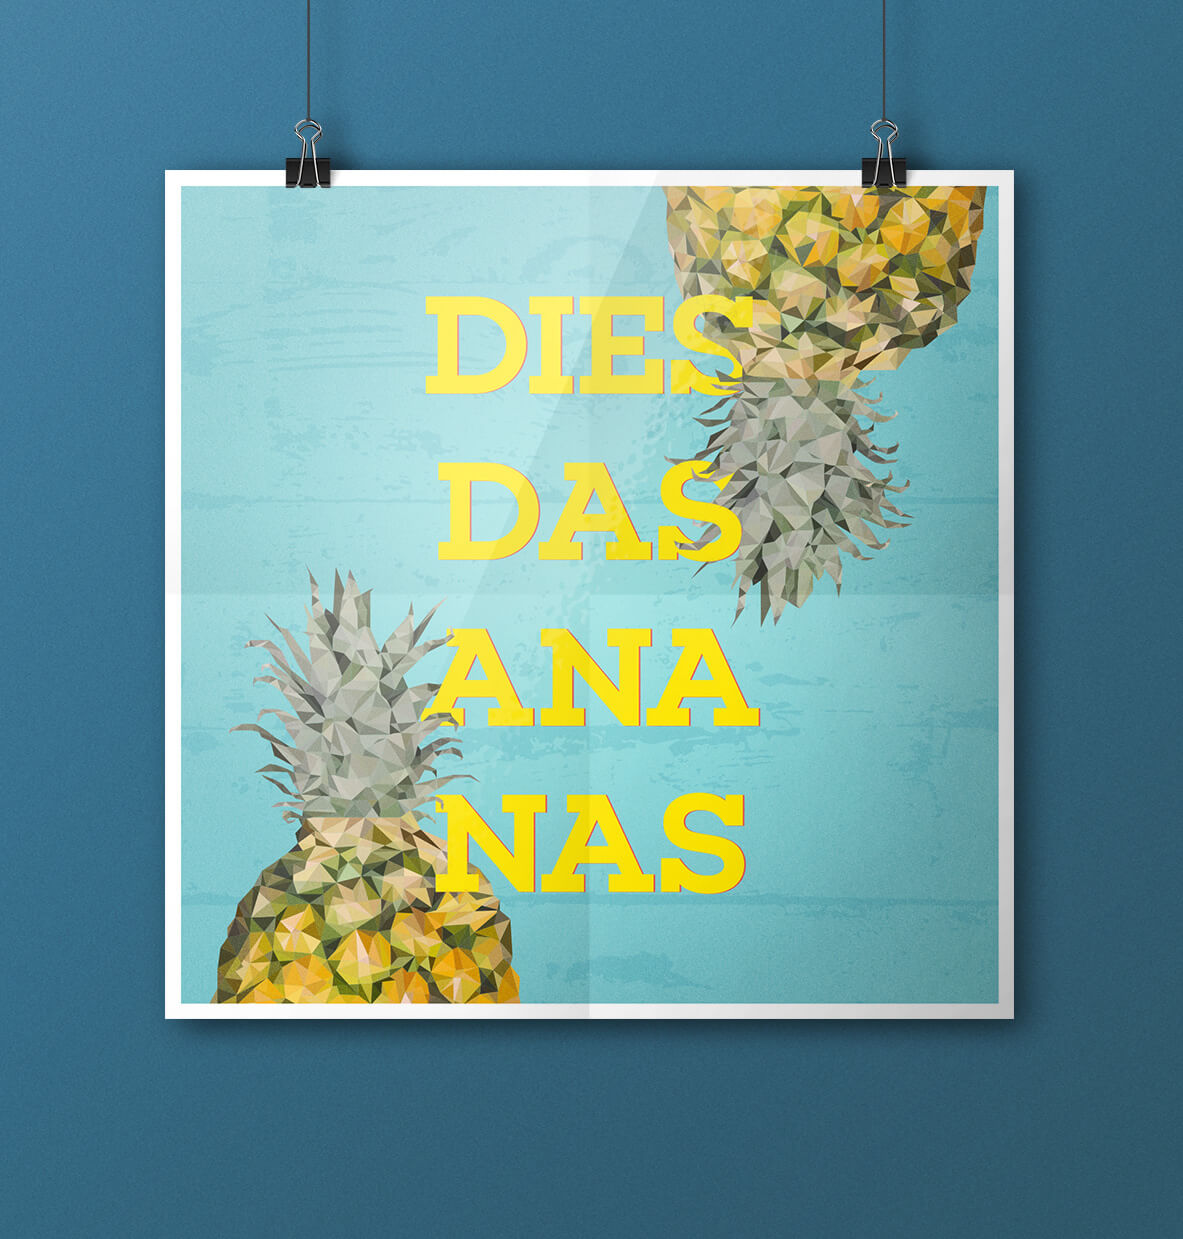 Posterdesign: digitale Low-Poly Illustration für ein Ananas Poster